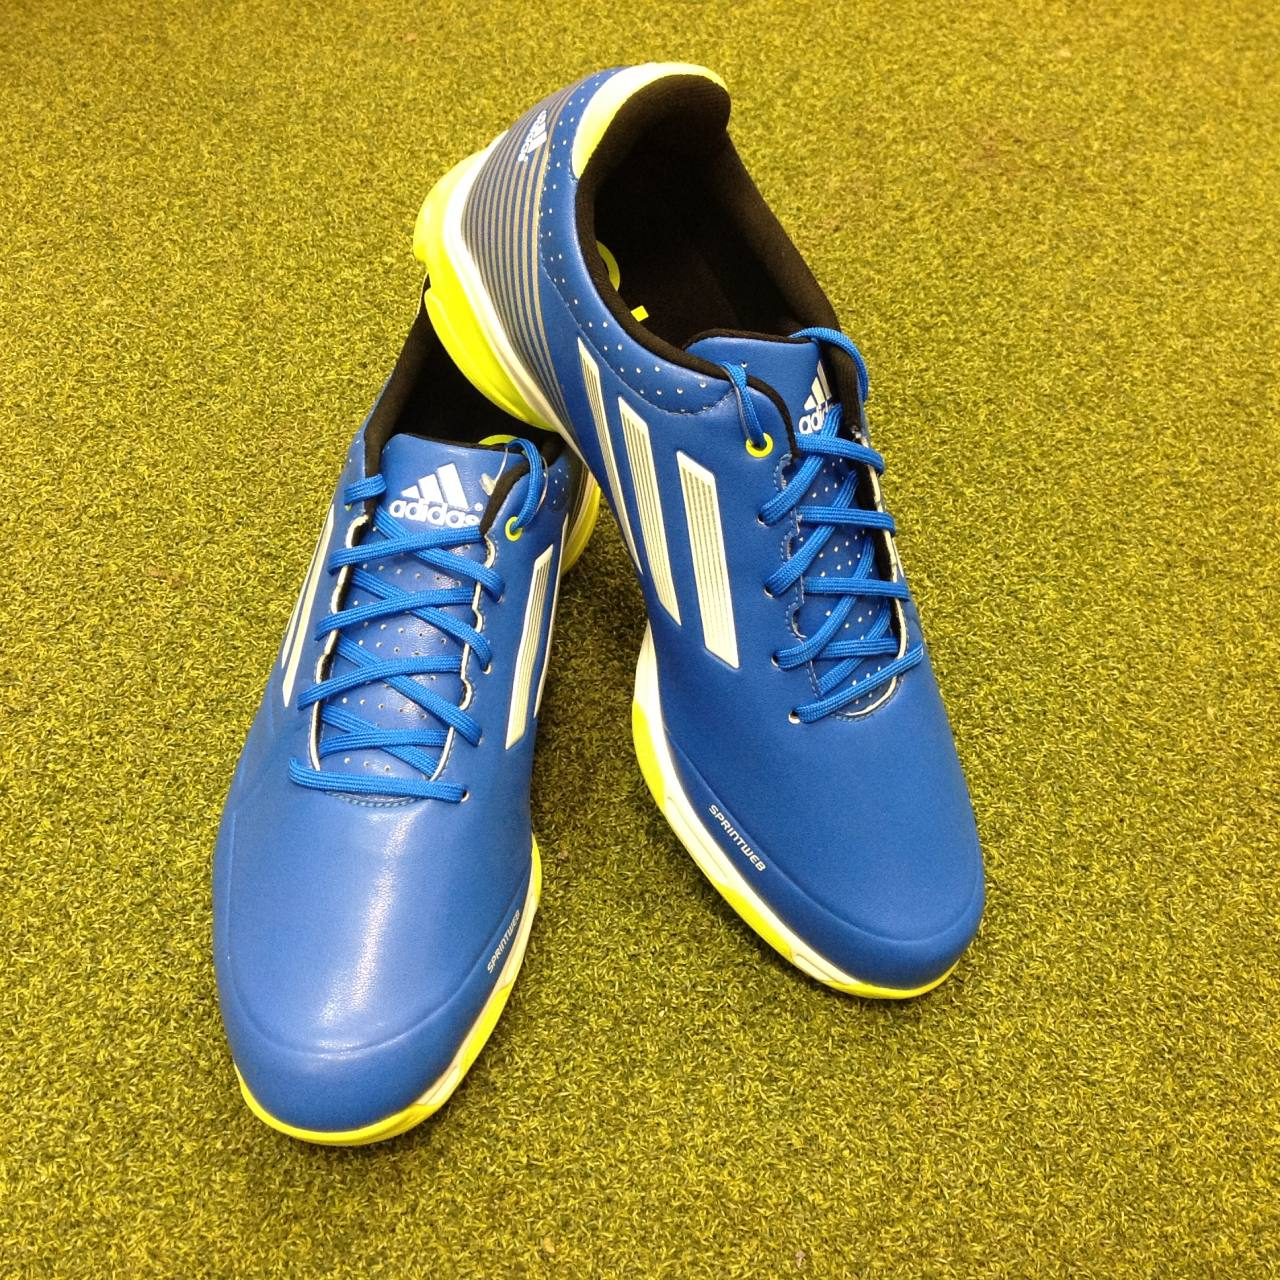 bab358074b26bd Details about NEW Adidas Adizero 6-Spike Golf Shoes - UK Size 8.5 - US 9 -  EU 42 2 3